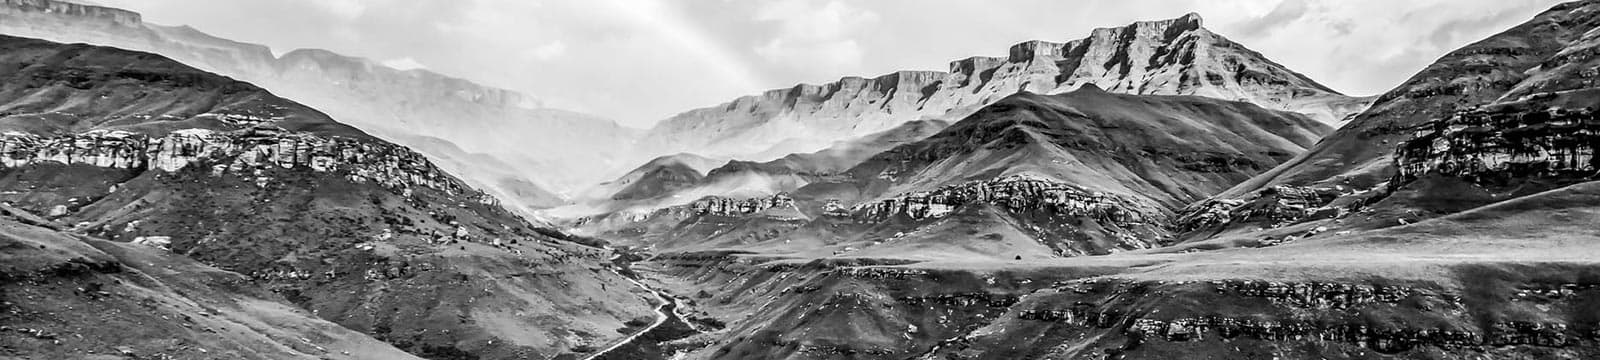 View of the Lesotho mountain range